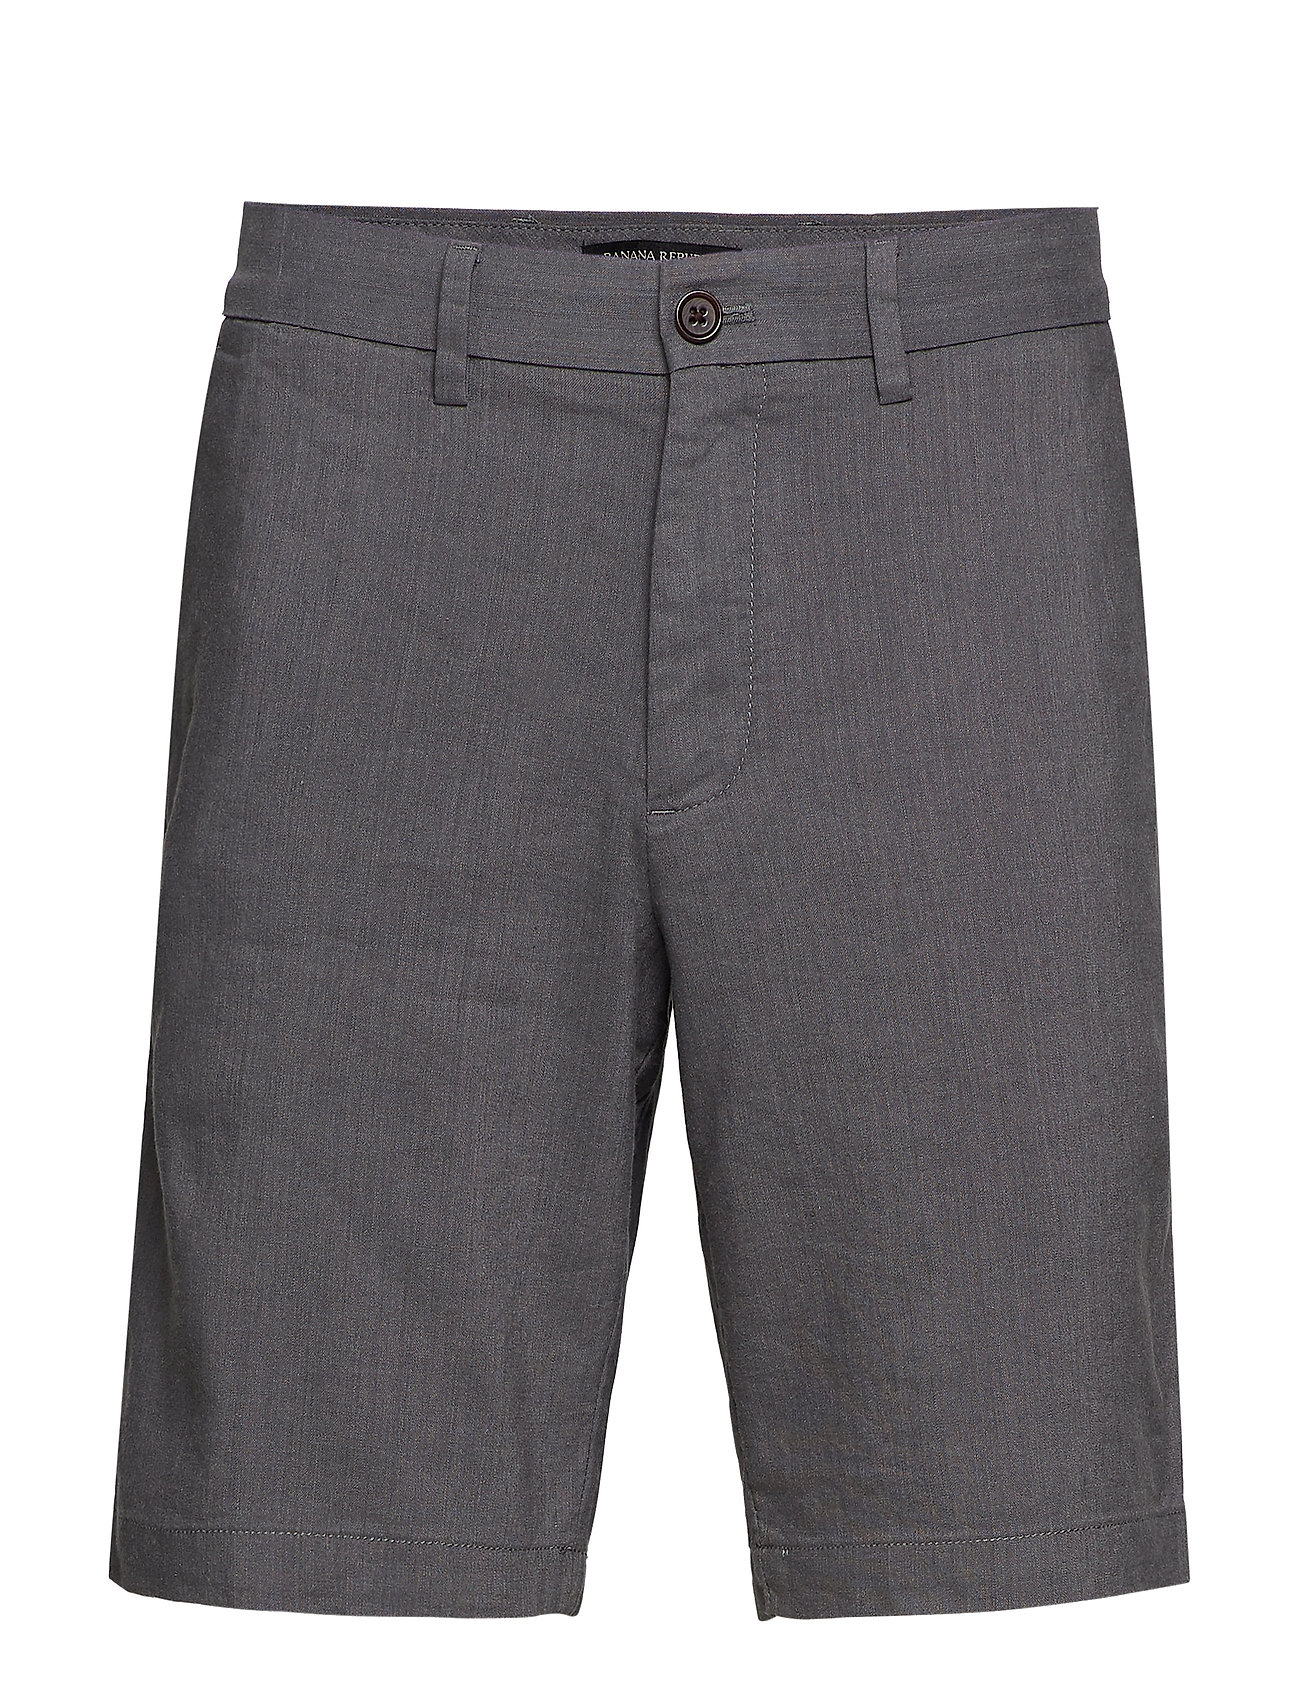 "Banana Republic 9"" Slim Linen Blend Short - MESA GREY"